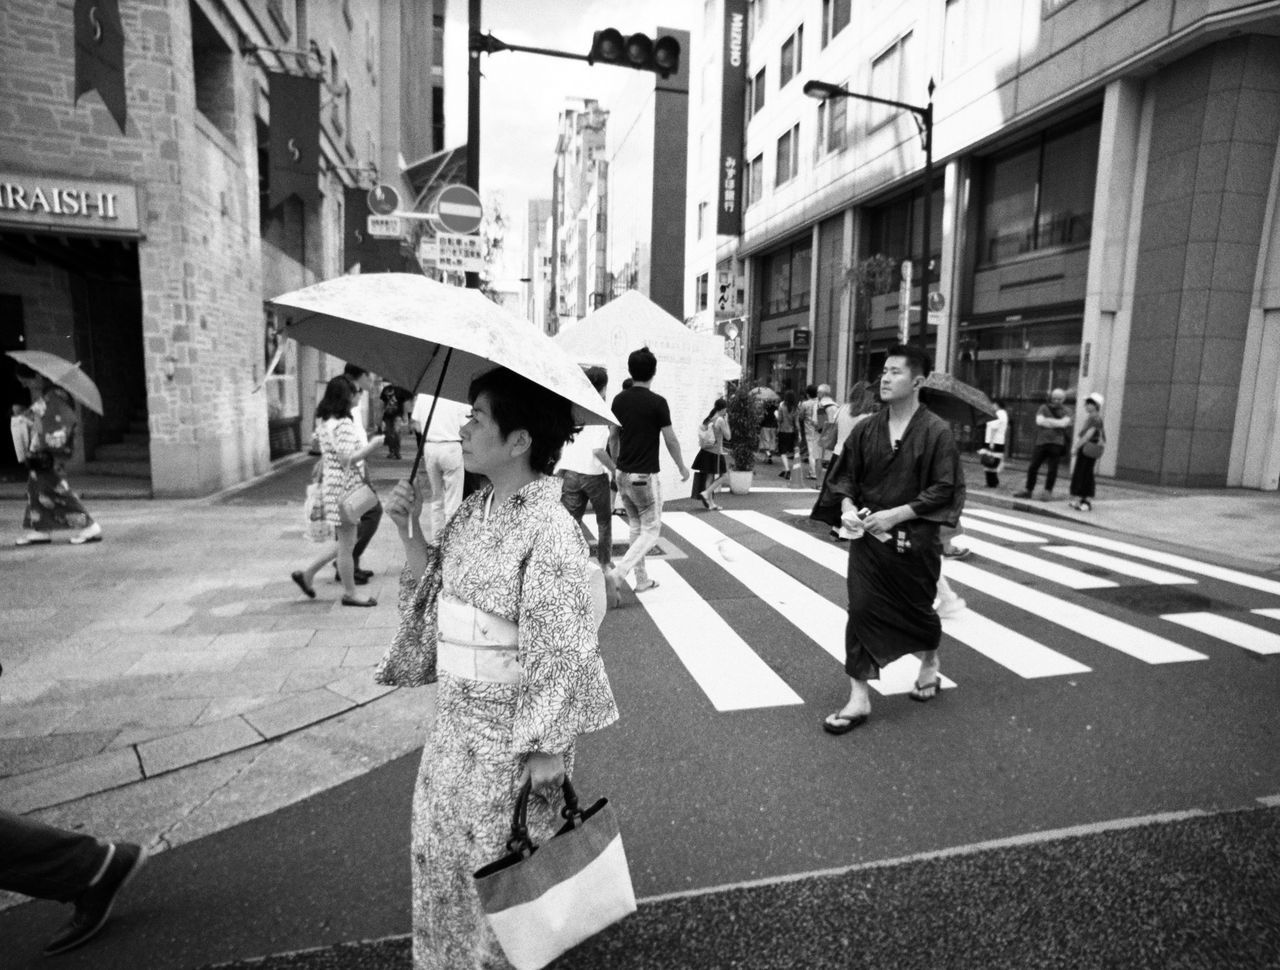 Tsukiji fish market in Tokyo, Japan Adult Adults Only blackandwhite building exterior City City Life City Street day Japan large group of people Market men monochrome outdoors people people and places People watching street street photography Tokyo travel destinations Traveling walking Welcome to Black women